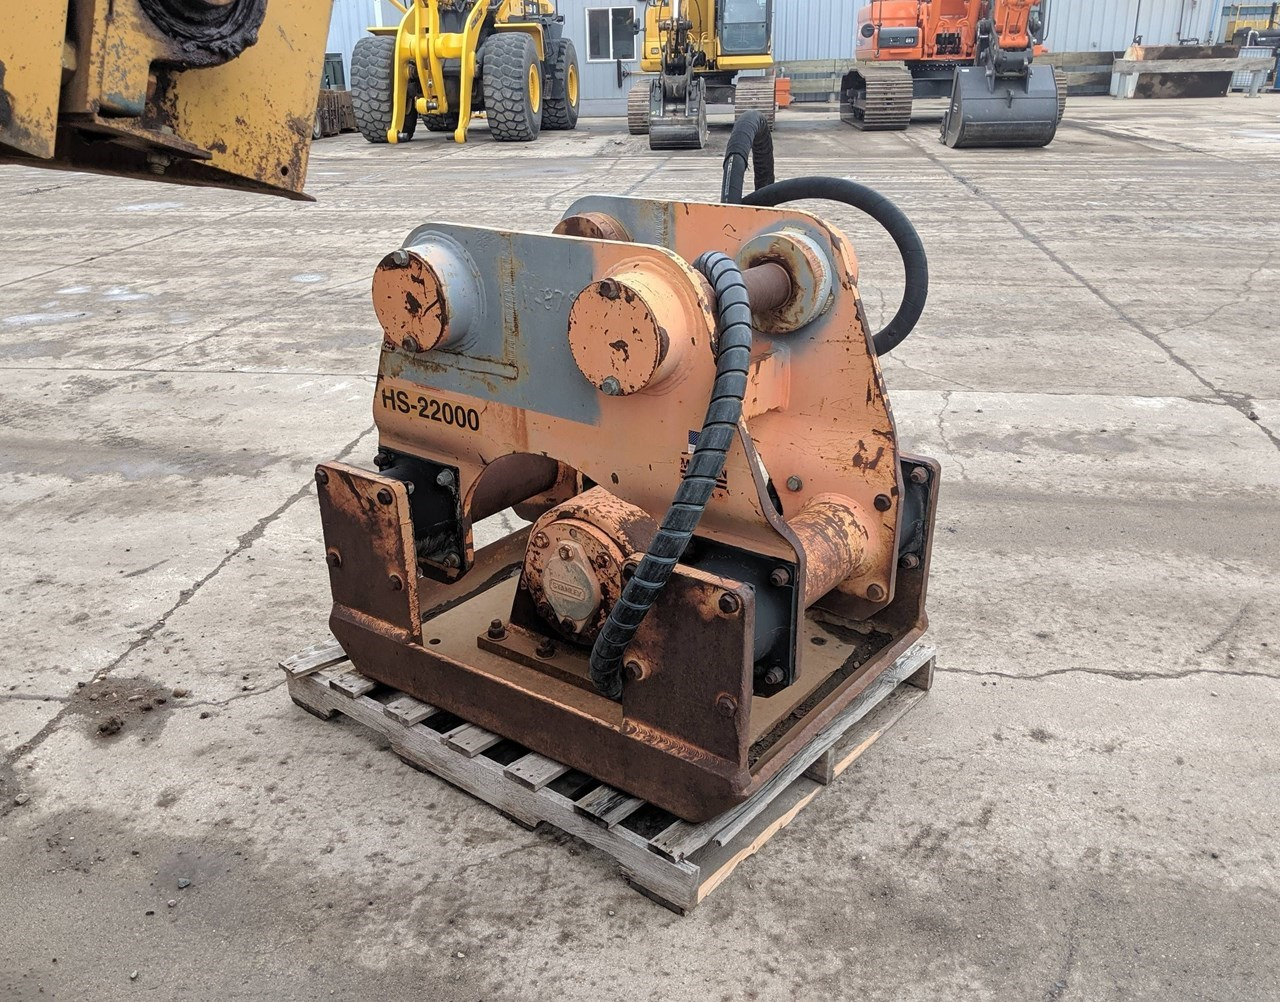 Stanley HS22000 Plate Compactor For Sale